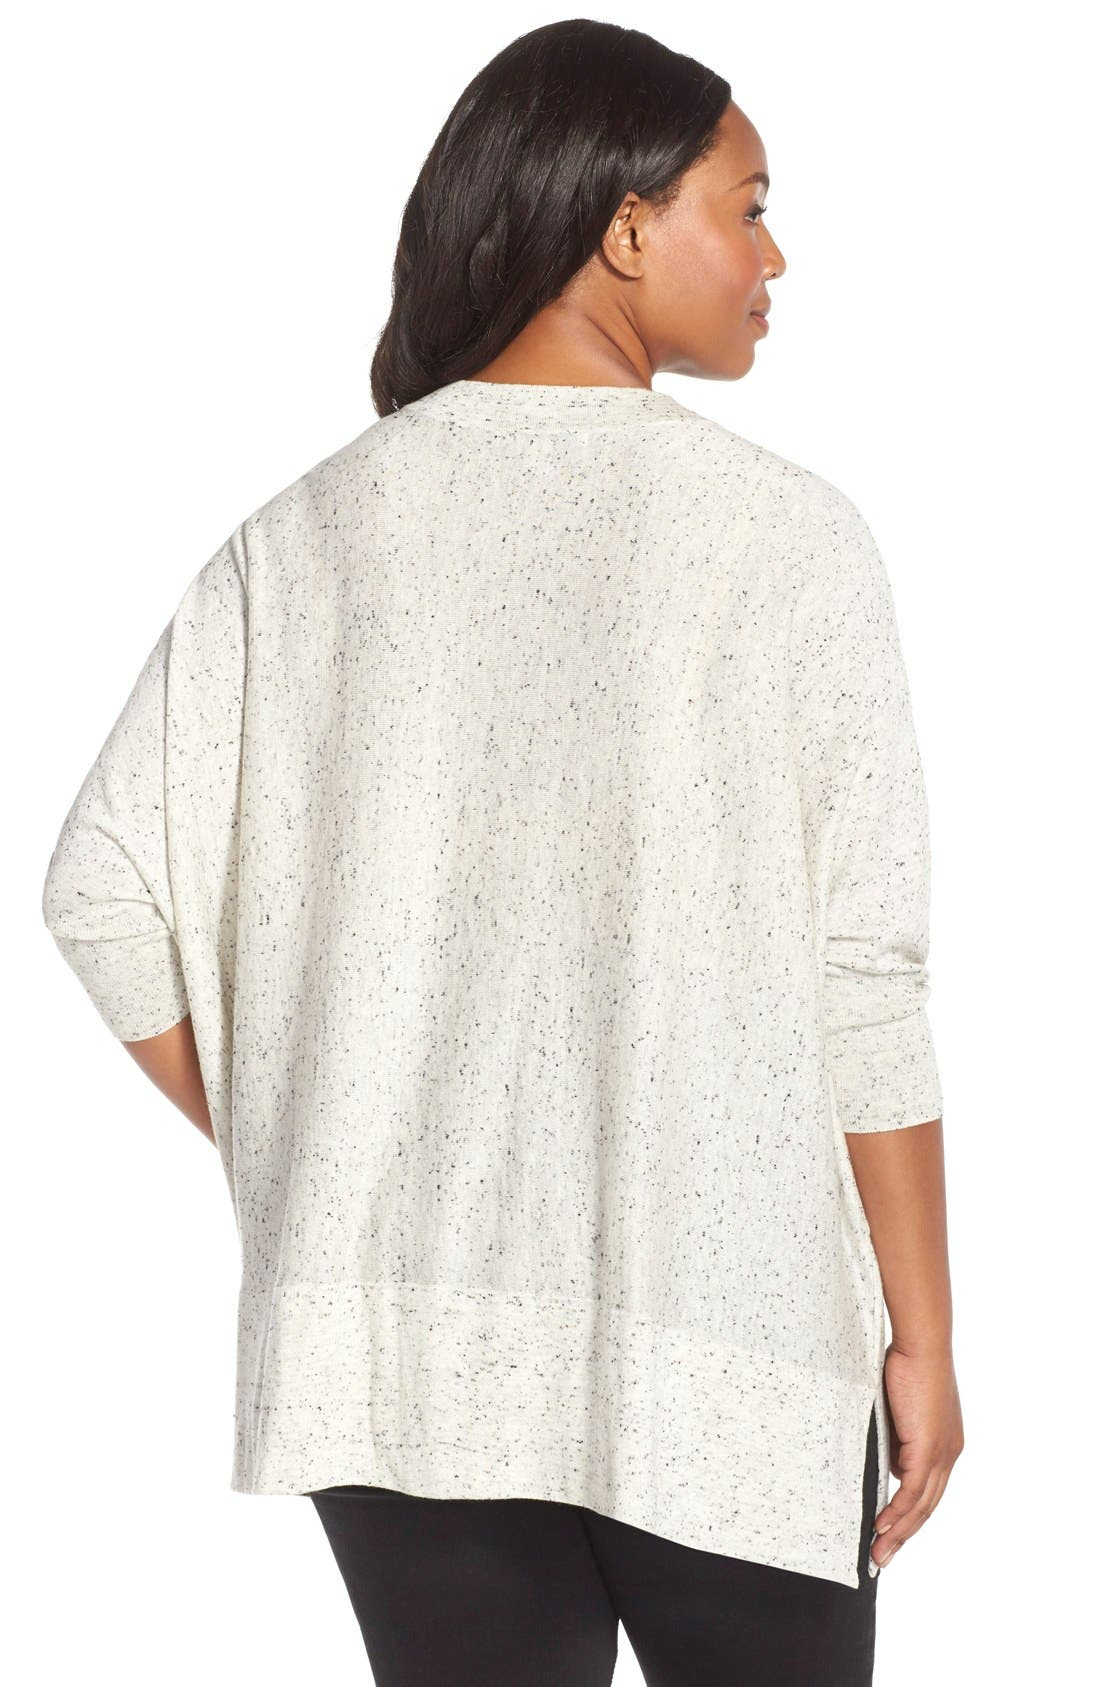 V-Neck Dolman Sleeve Pullover,                             Alternate thumbnail 2, color,                             Grey Heather Black Pattern